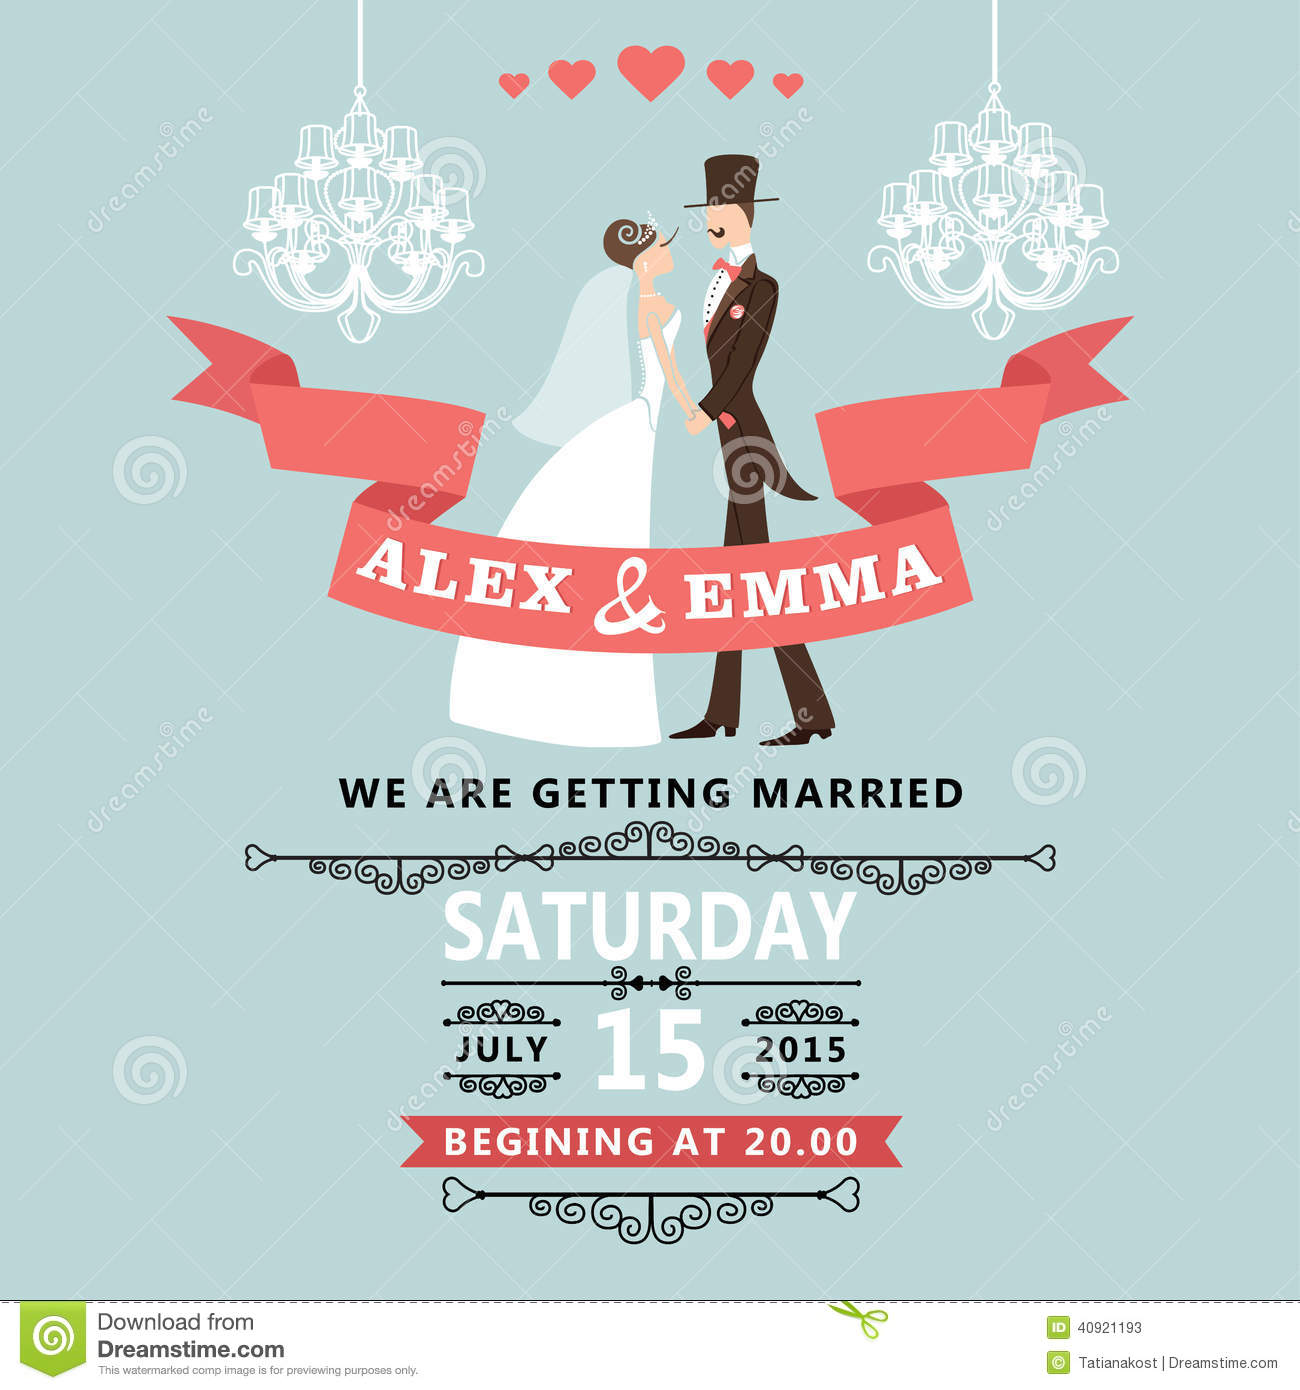 The best wedding invitations for you cute wedding invitations designs cute wedding invitations designs filmwisefo